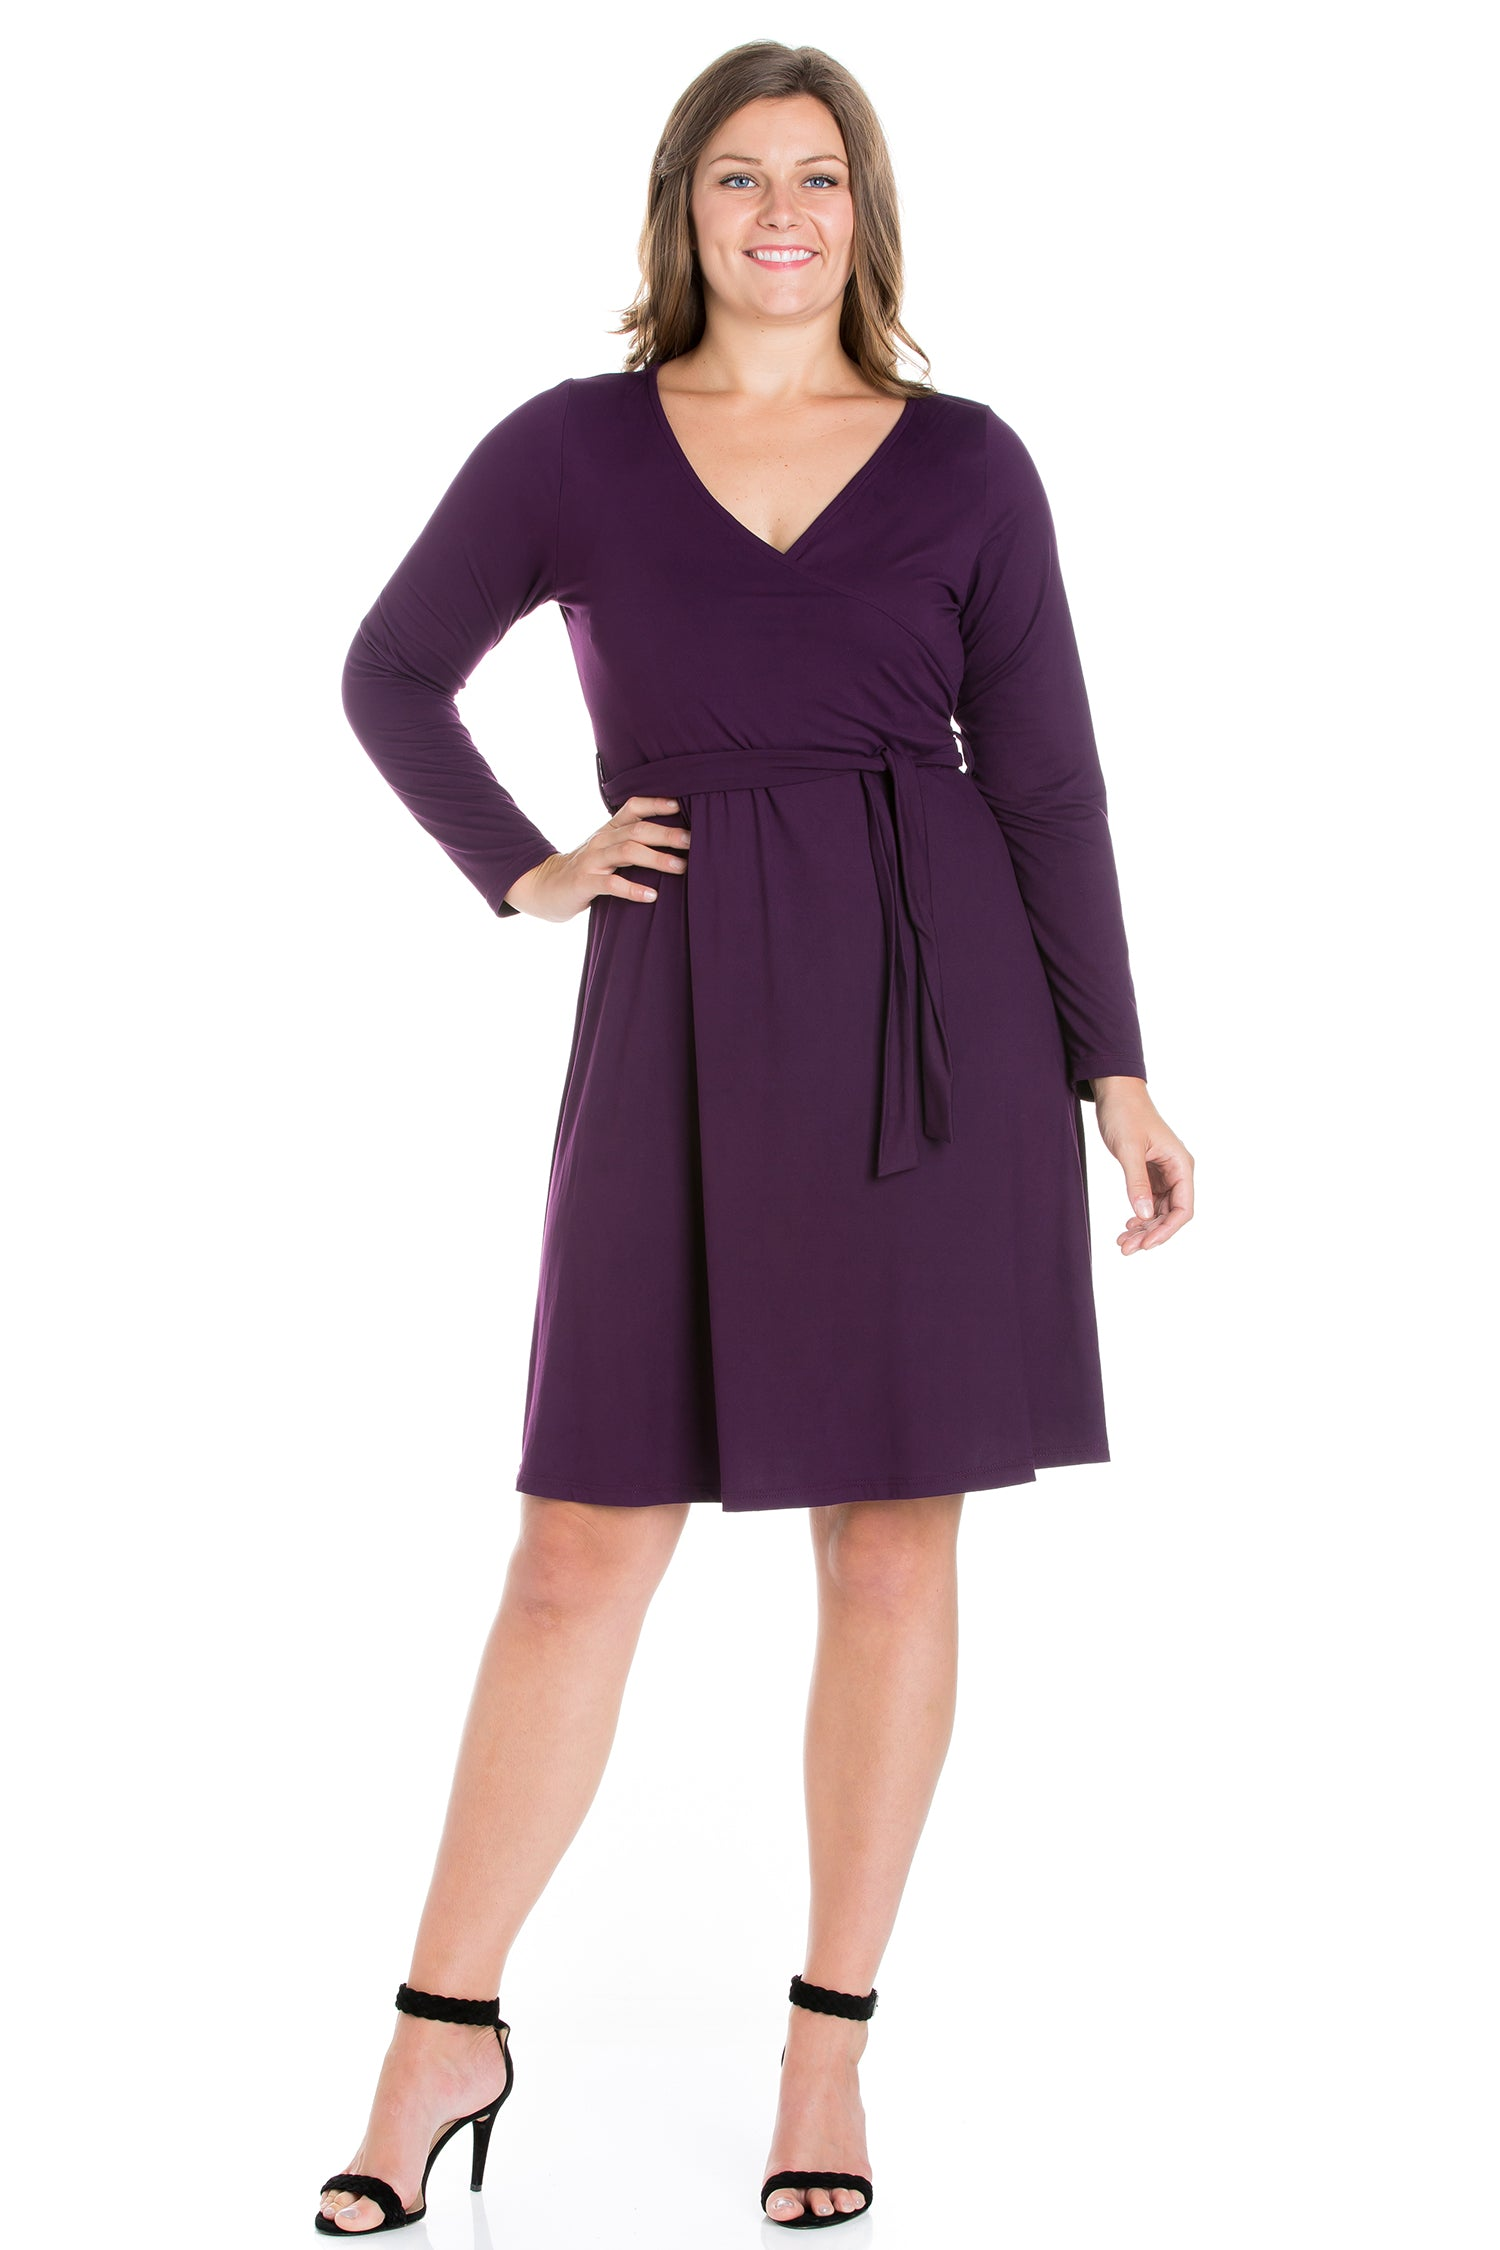 24seven Comfort Apparel Chic V-Neck Long Sleeve Belted Plus Size Dress-DRESSES-24Seven Comfort Apparel-PURPLE-1X-24/7 Comfort Apparel